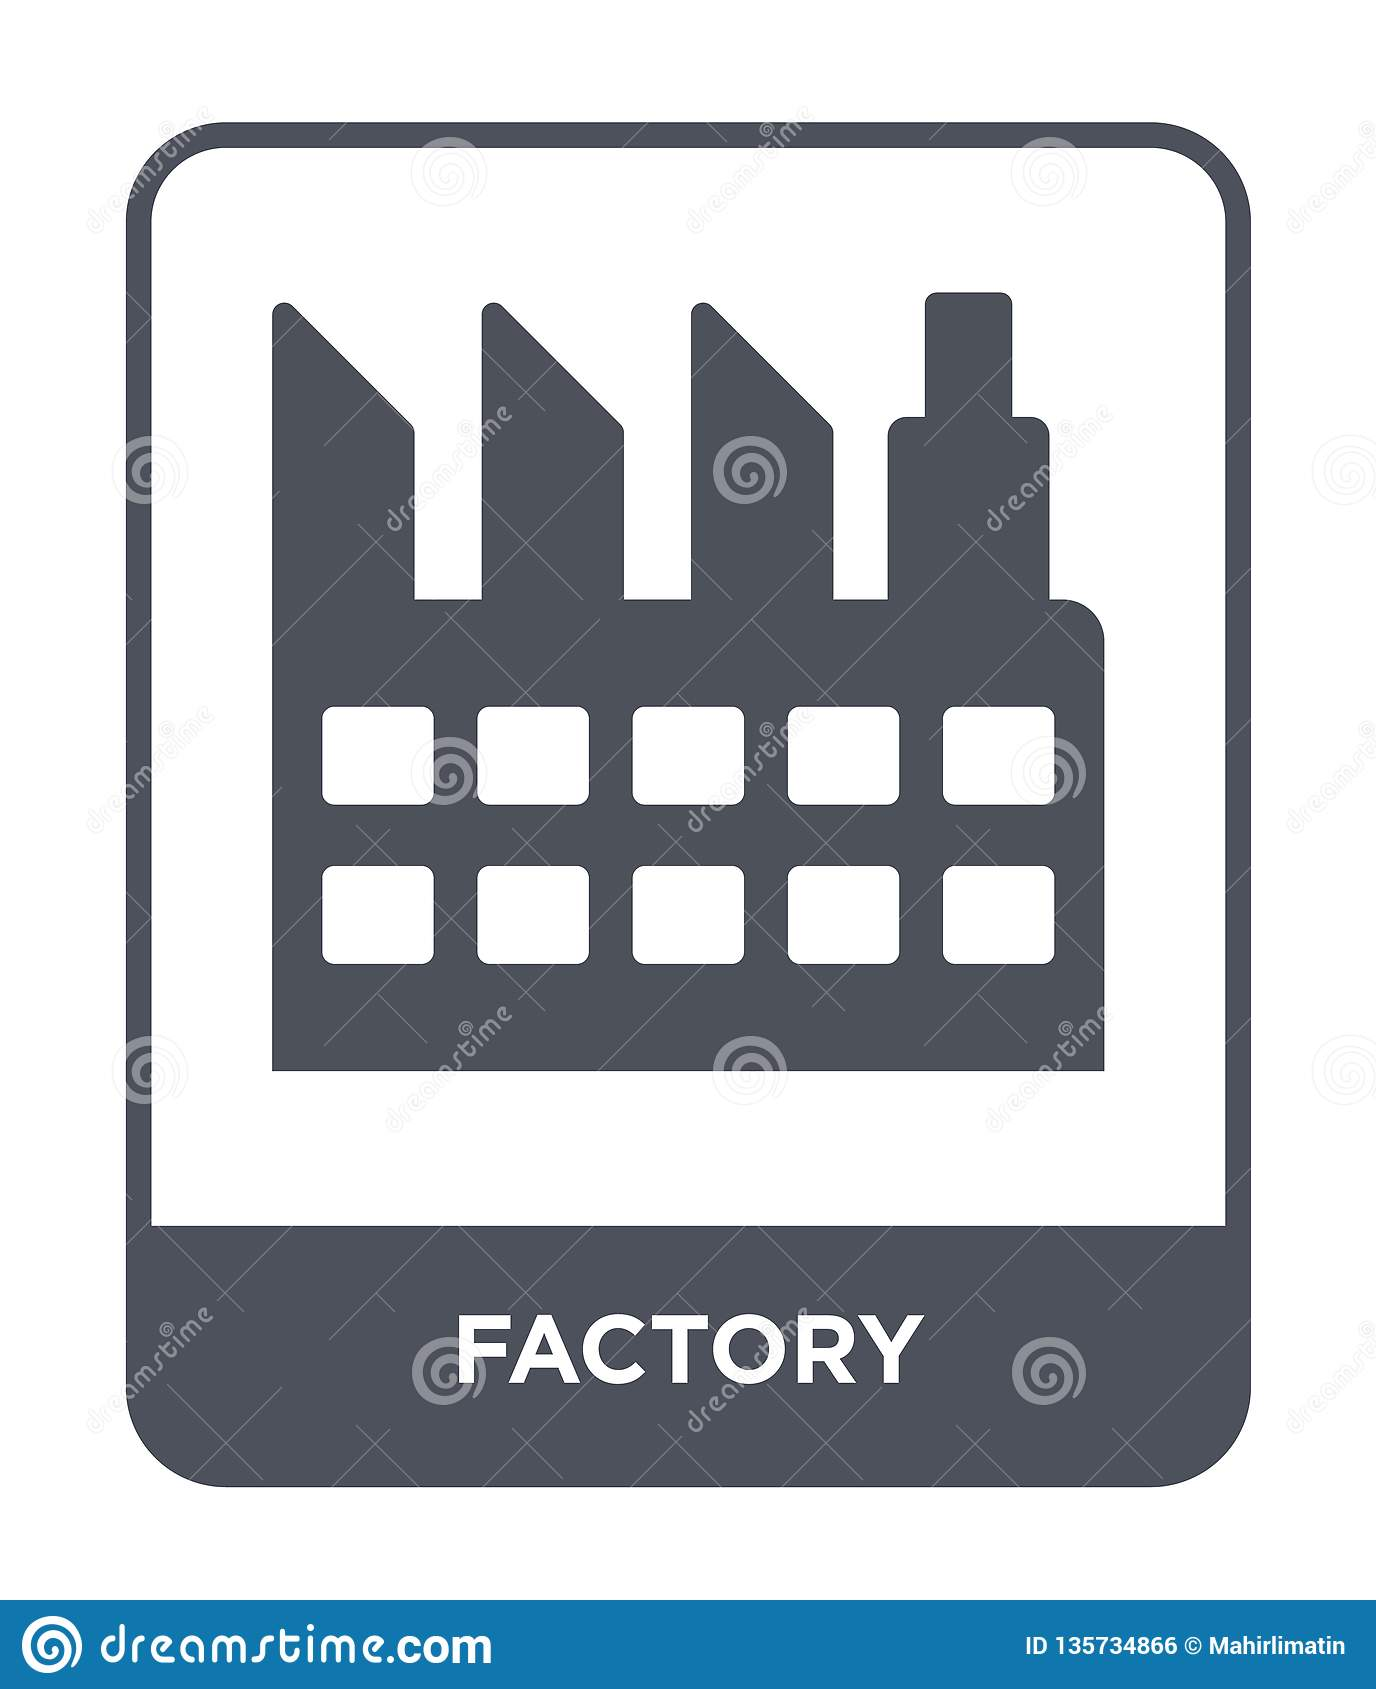 factory icon in trendy design style. factory icon isolated on white background. factory vector icon simple and modern flat symbol